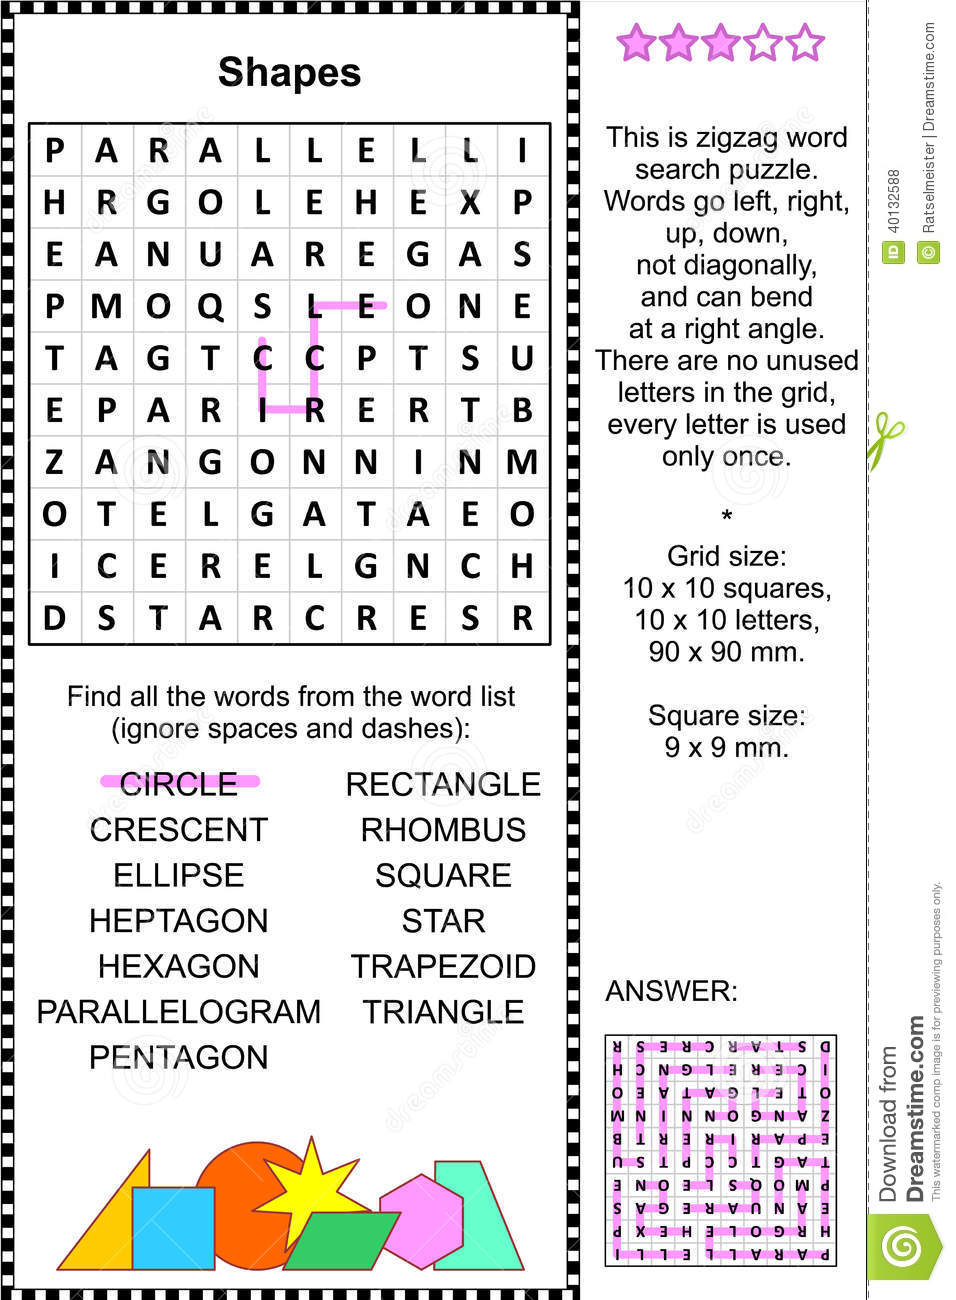 Shapes themed zigzag word search puzzle (suitable both for kids and ...